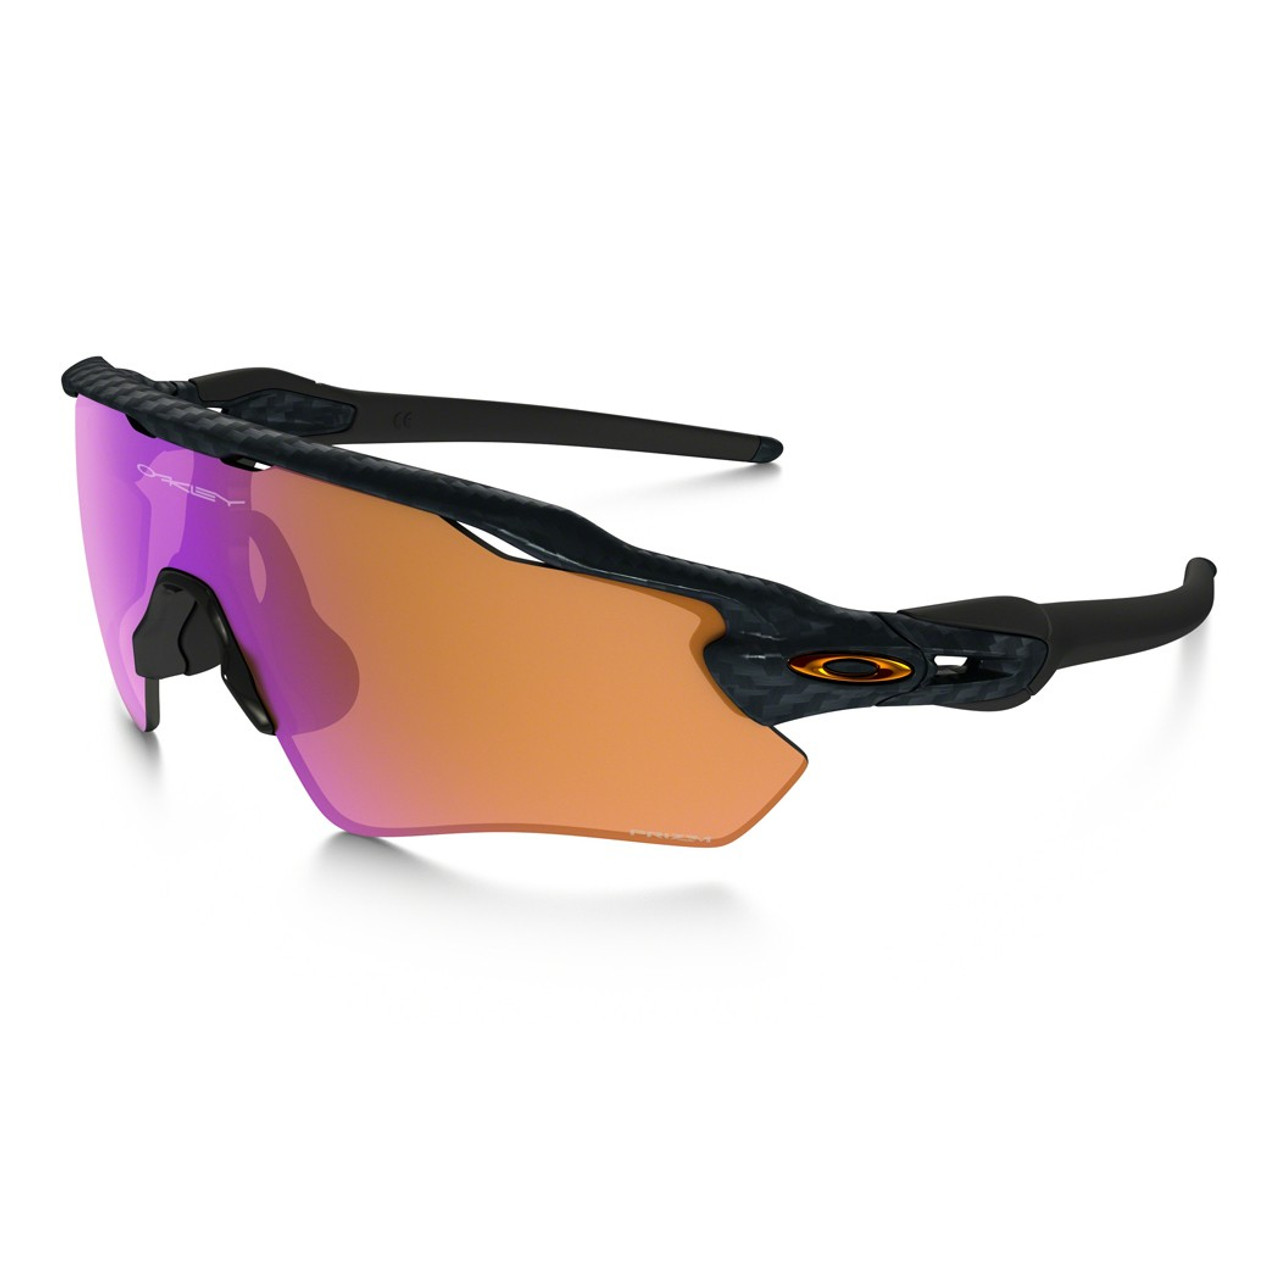 d9bea5f13c Oakley Sunglasses - Radar EV XS - Carbon Fiber Prism Trail - Surf and Dirt